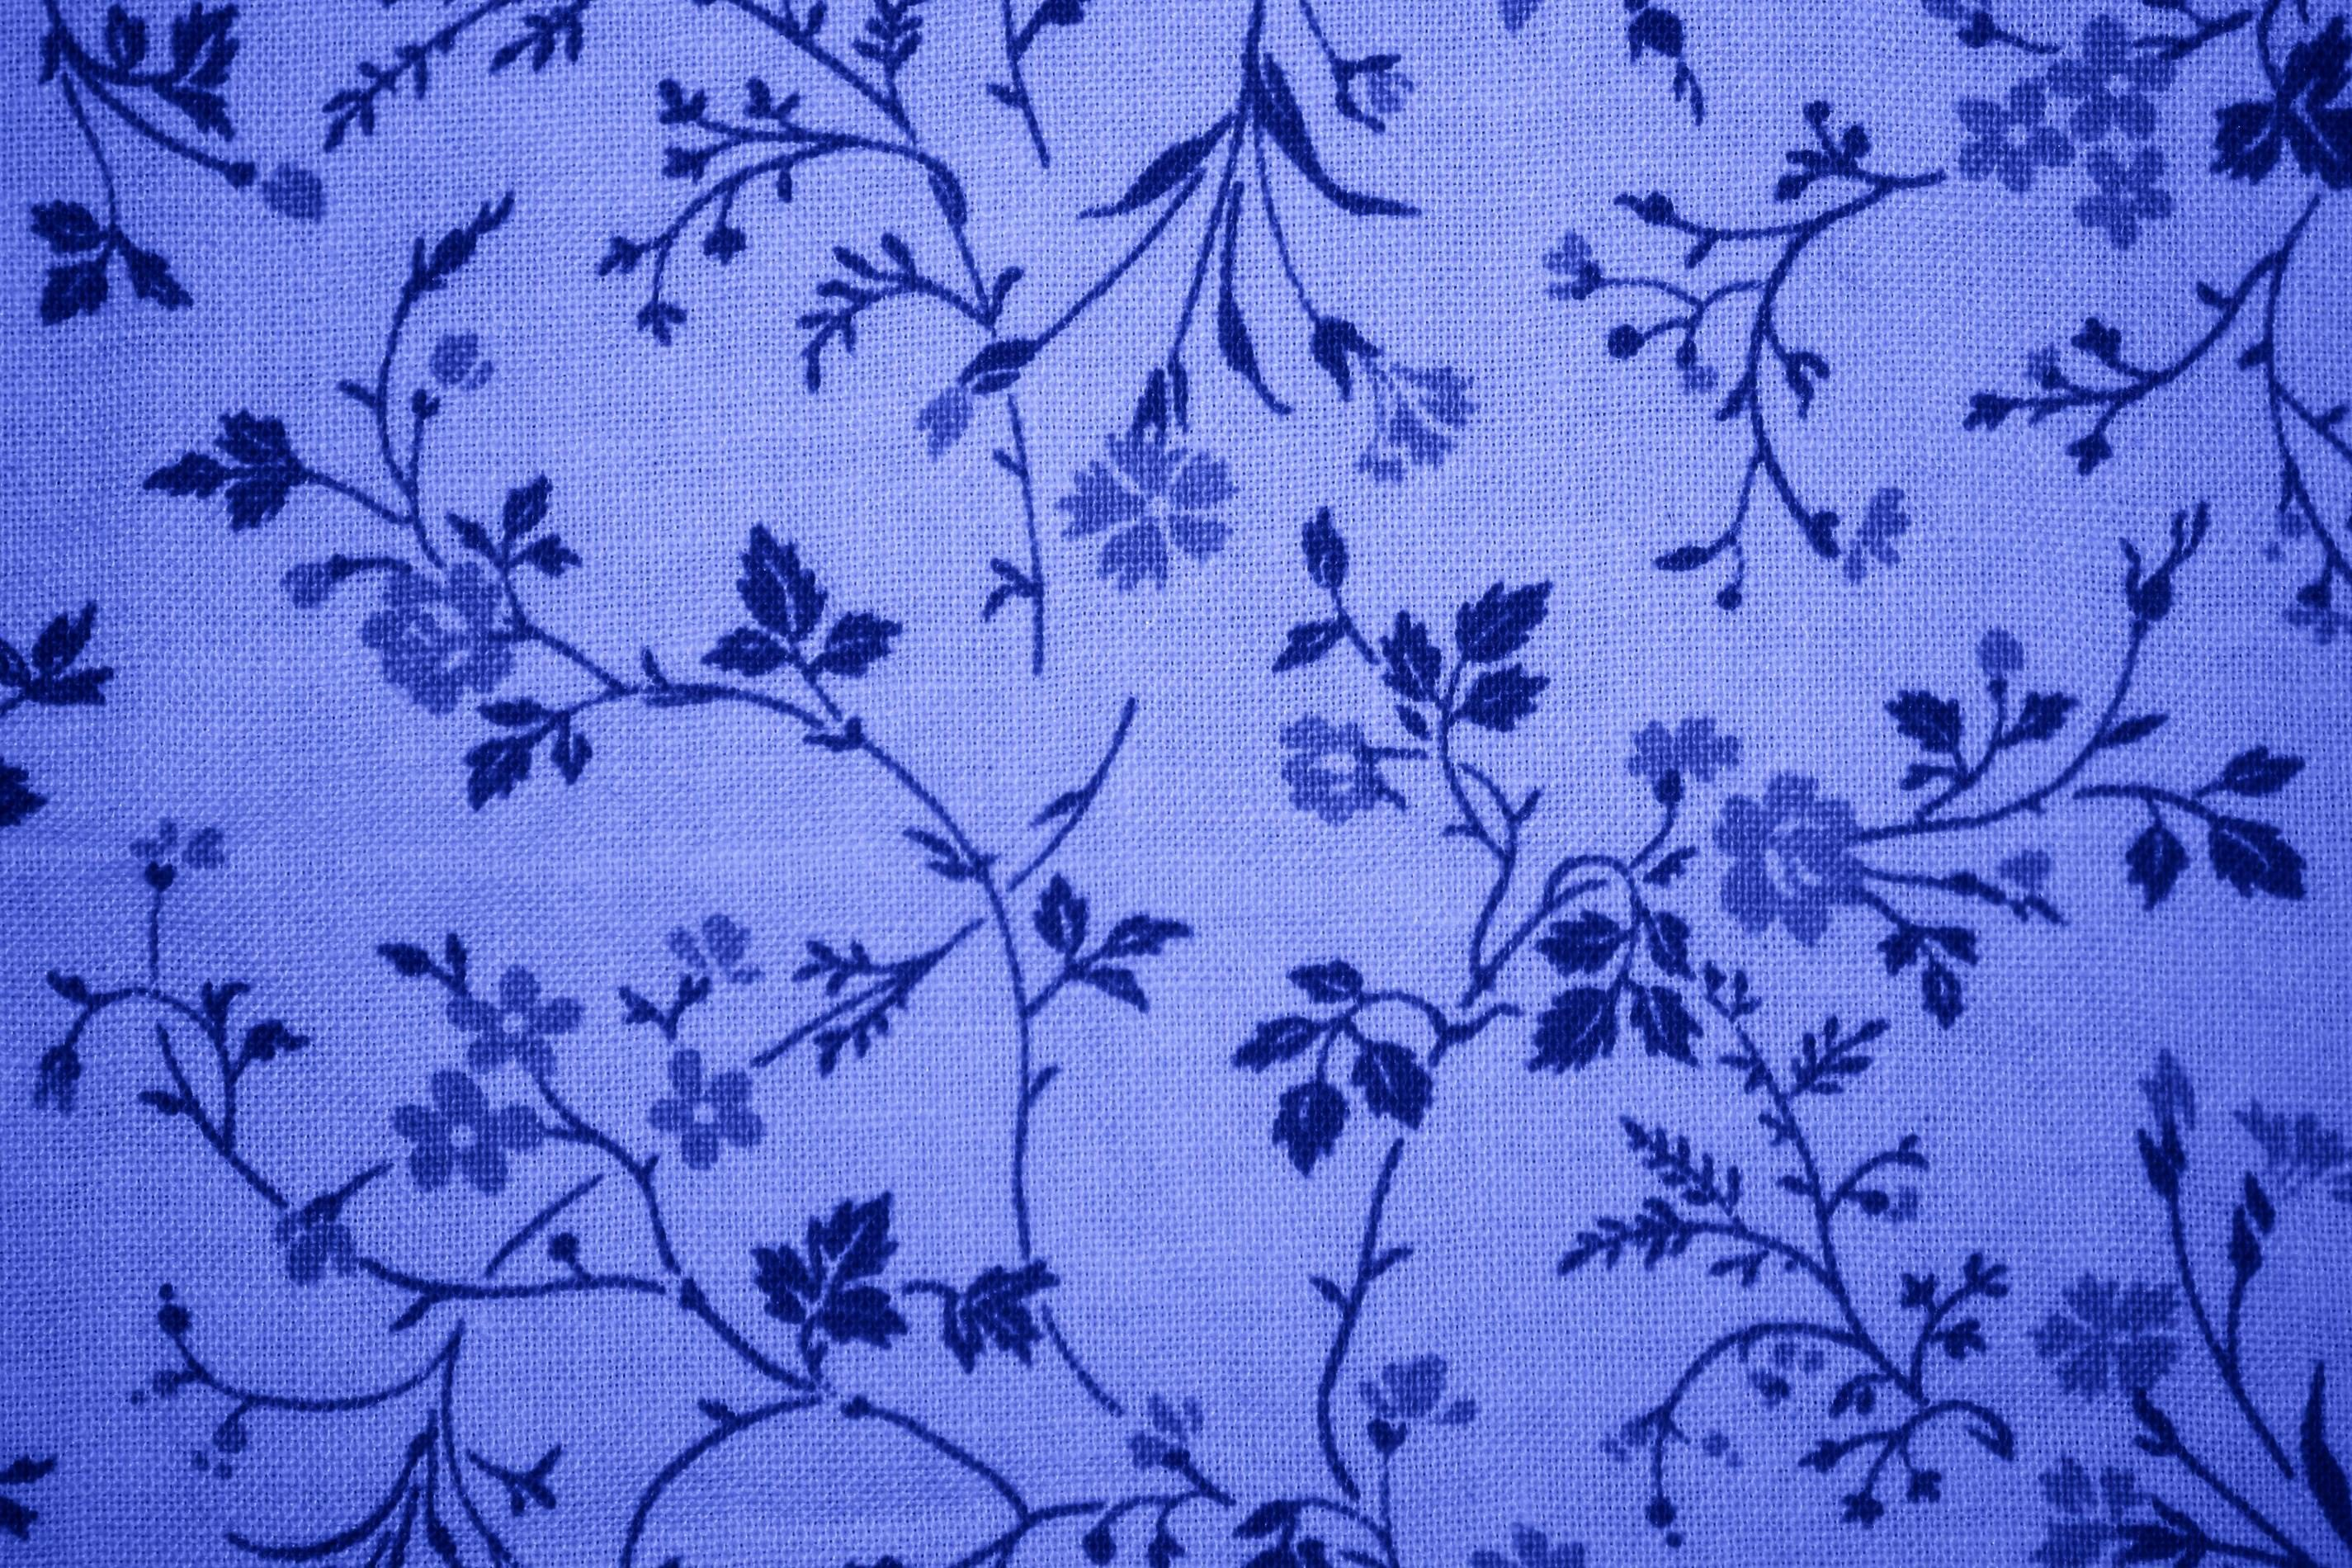 Free picture: blue, floral design, print, fabric, texture for Fabric Texture Design Blue  242xkb